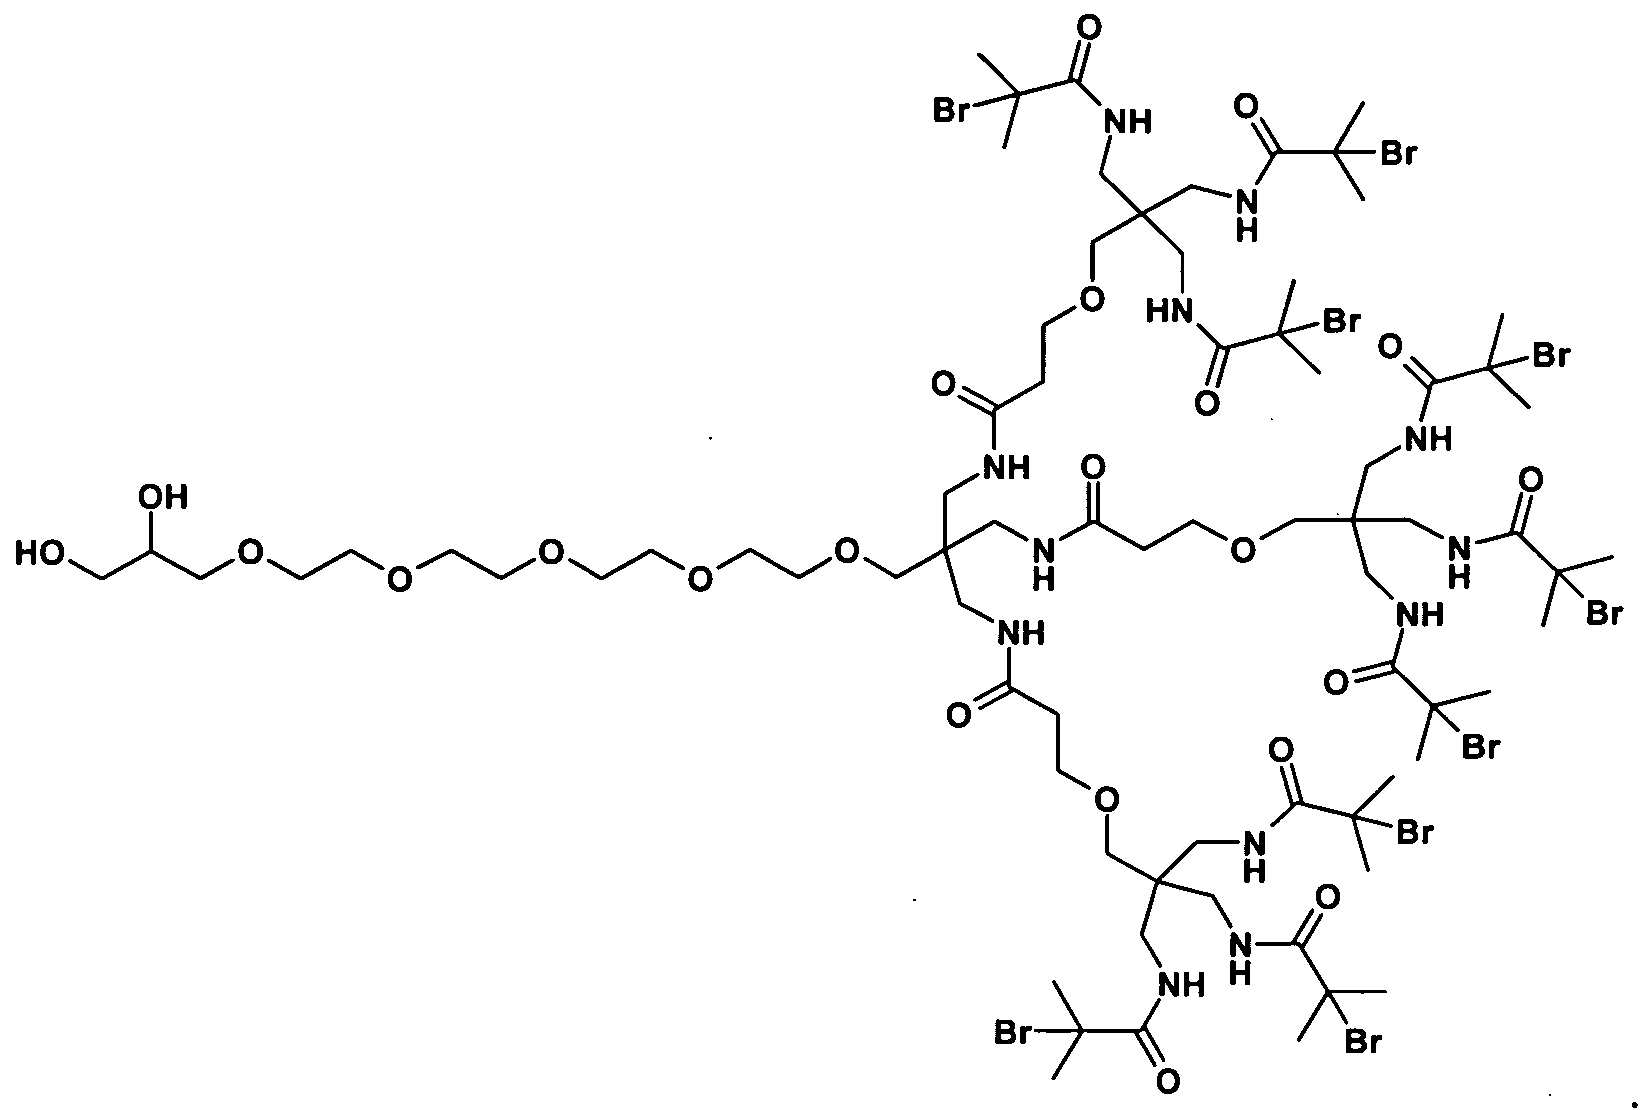 Wo2011130694a2 High Molecular Weight Zwitterion Containing Remington 870 Diagram Submited Images Figure Imgf000049 0001